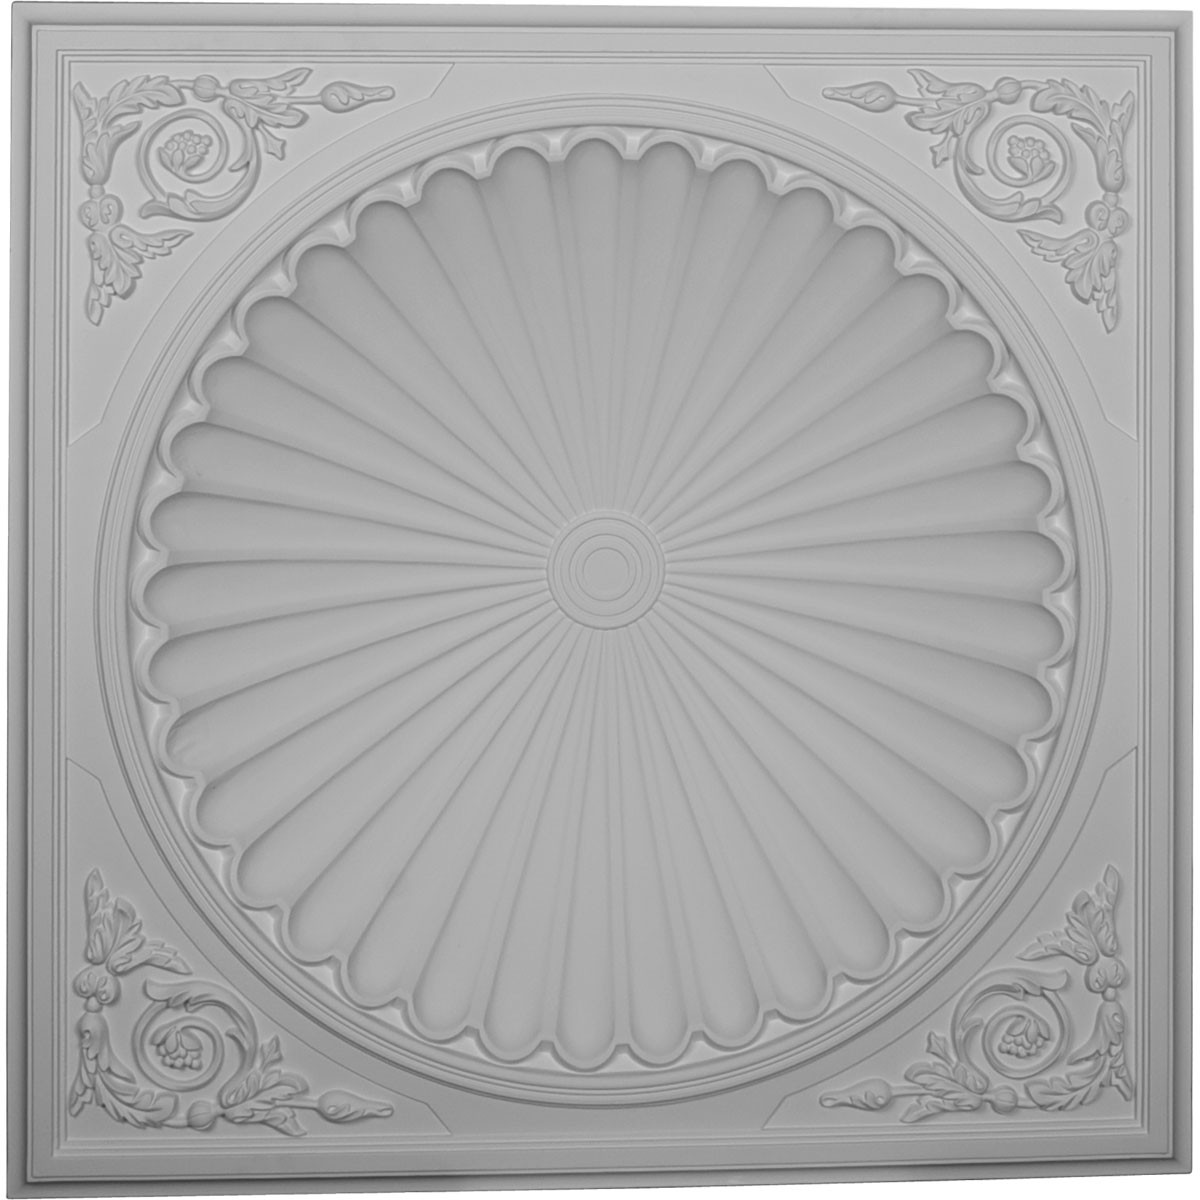 "EM-DOME38OD - 38 1/2""OD x 30 3/4""ID x 6 1/2""D Odessa Recessed Mount Ceiling Dome (32 1/2""Diameter x 7 7/8""D Rough Opening)"